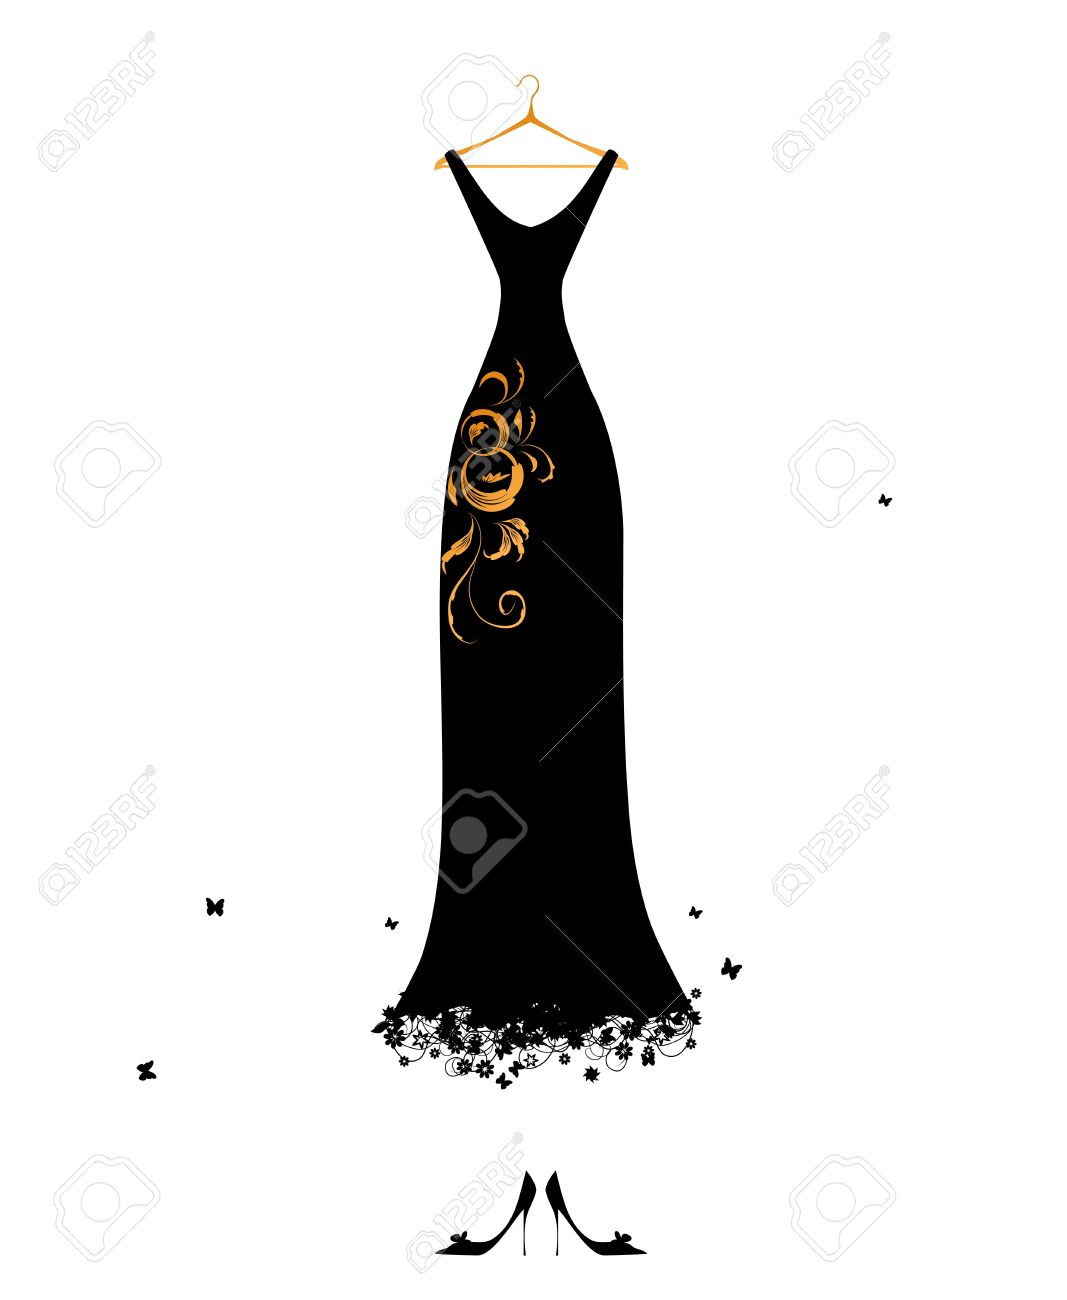 Black dress cartoon - Evening Dress Black On Hangers Stock Vector 7107792